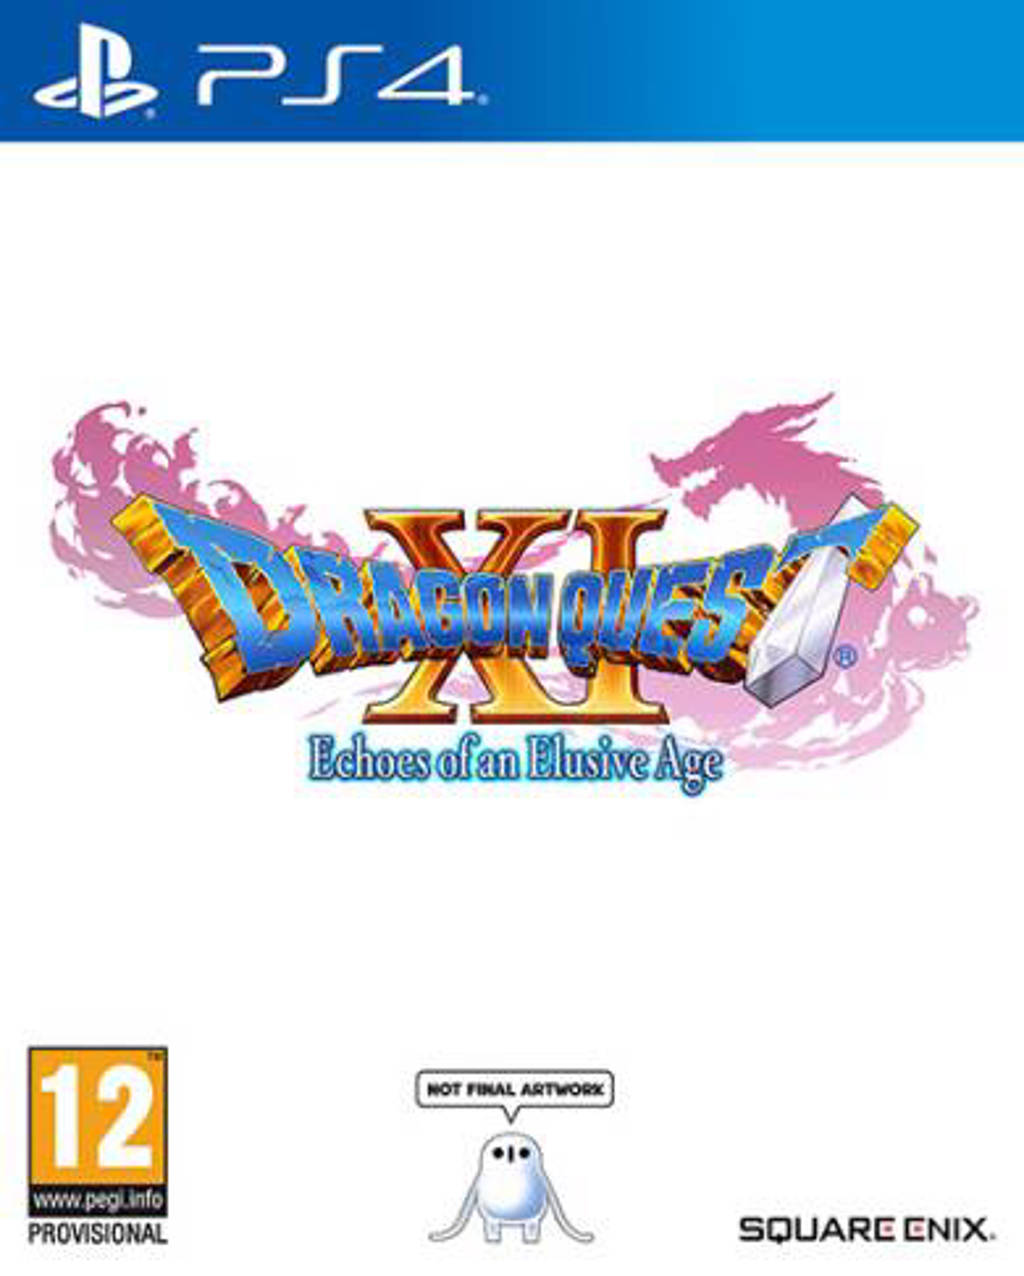 Dragon quest XI - Echoes of an exclusive age (PlayStation 4)